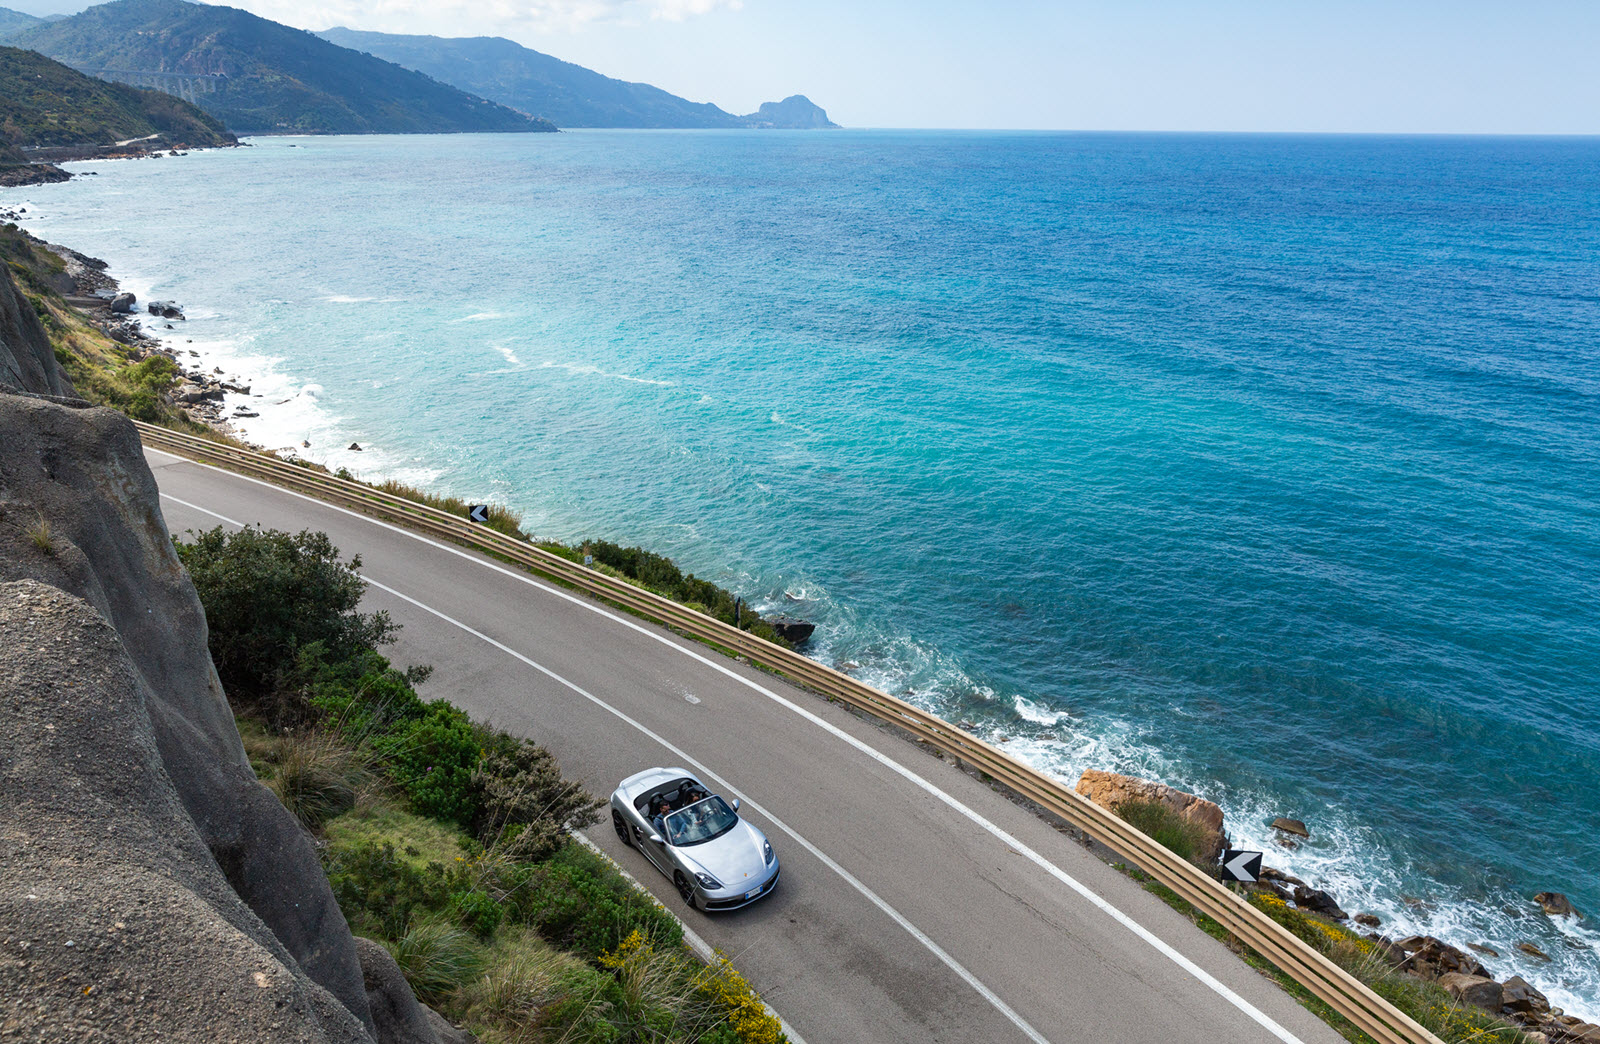 Porsche Driving Experience In Sicily